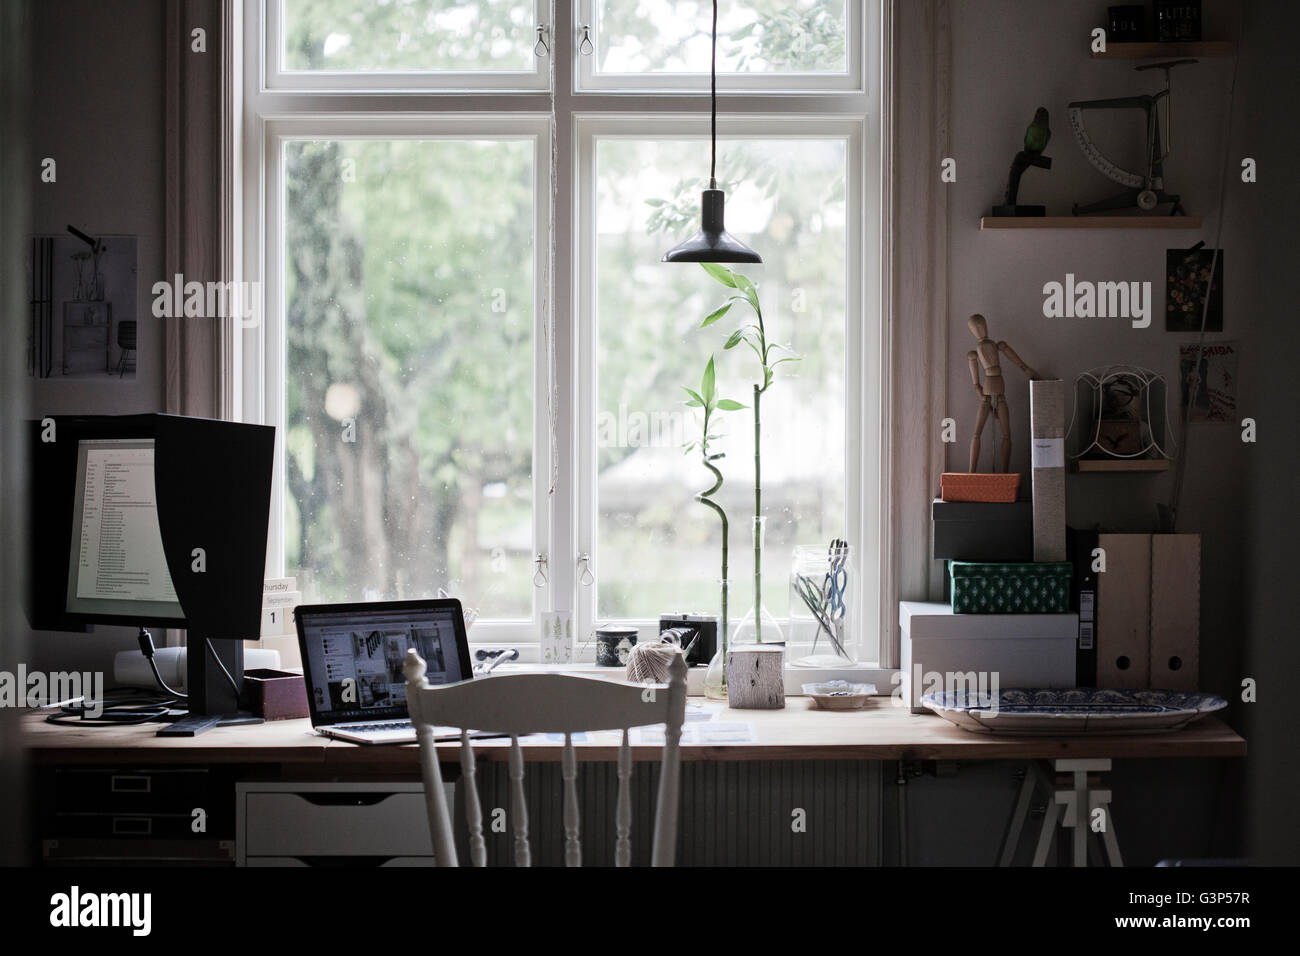 Sweden, Desk with laptop and computer monitor by window - Stock Image